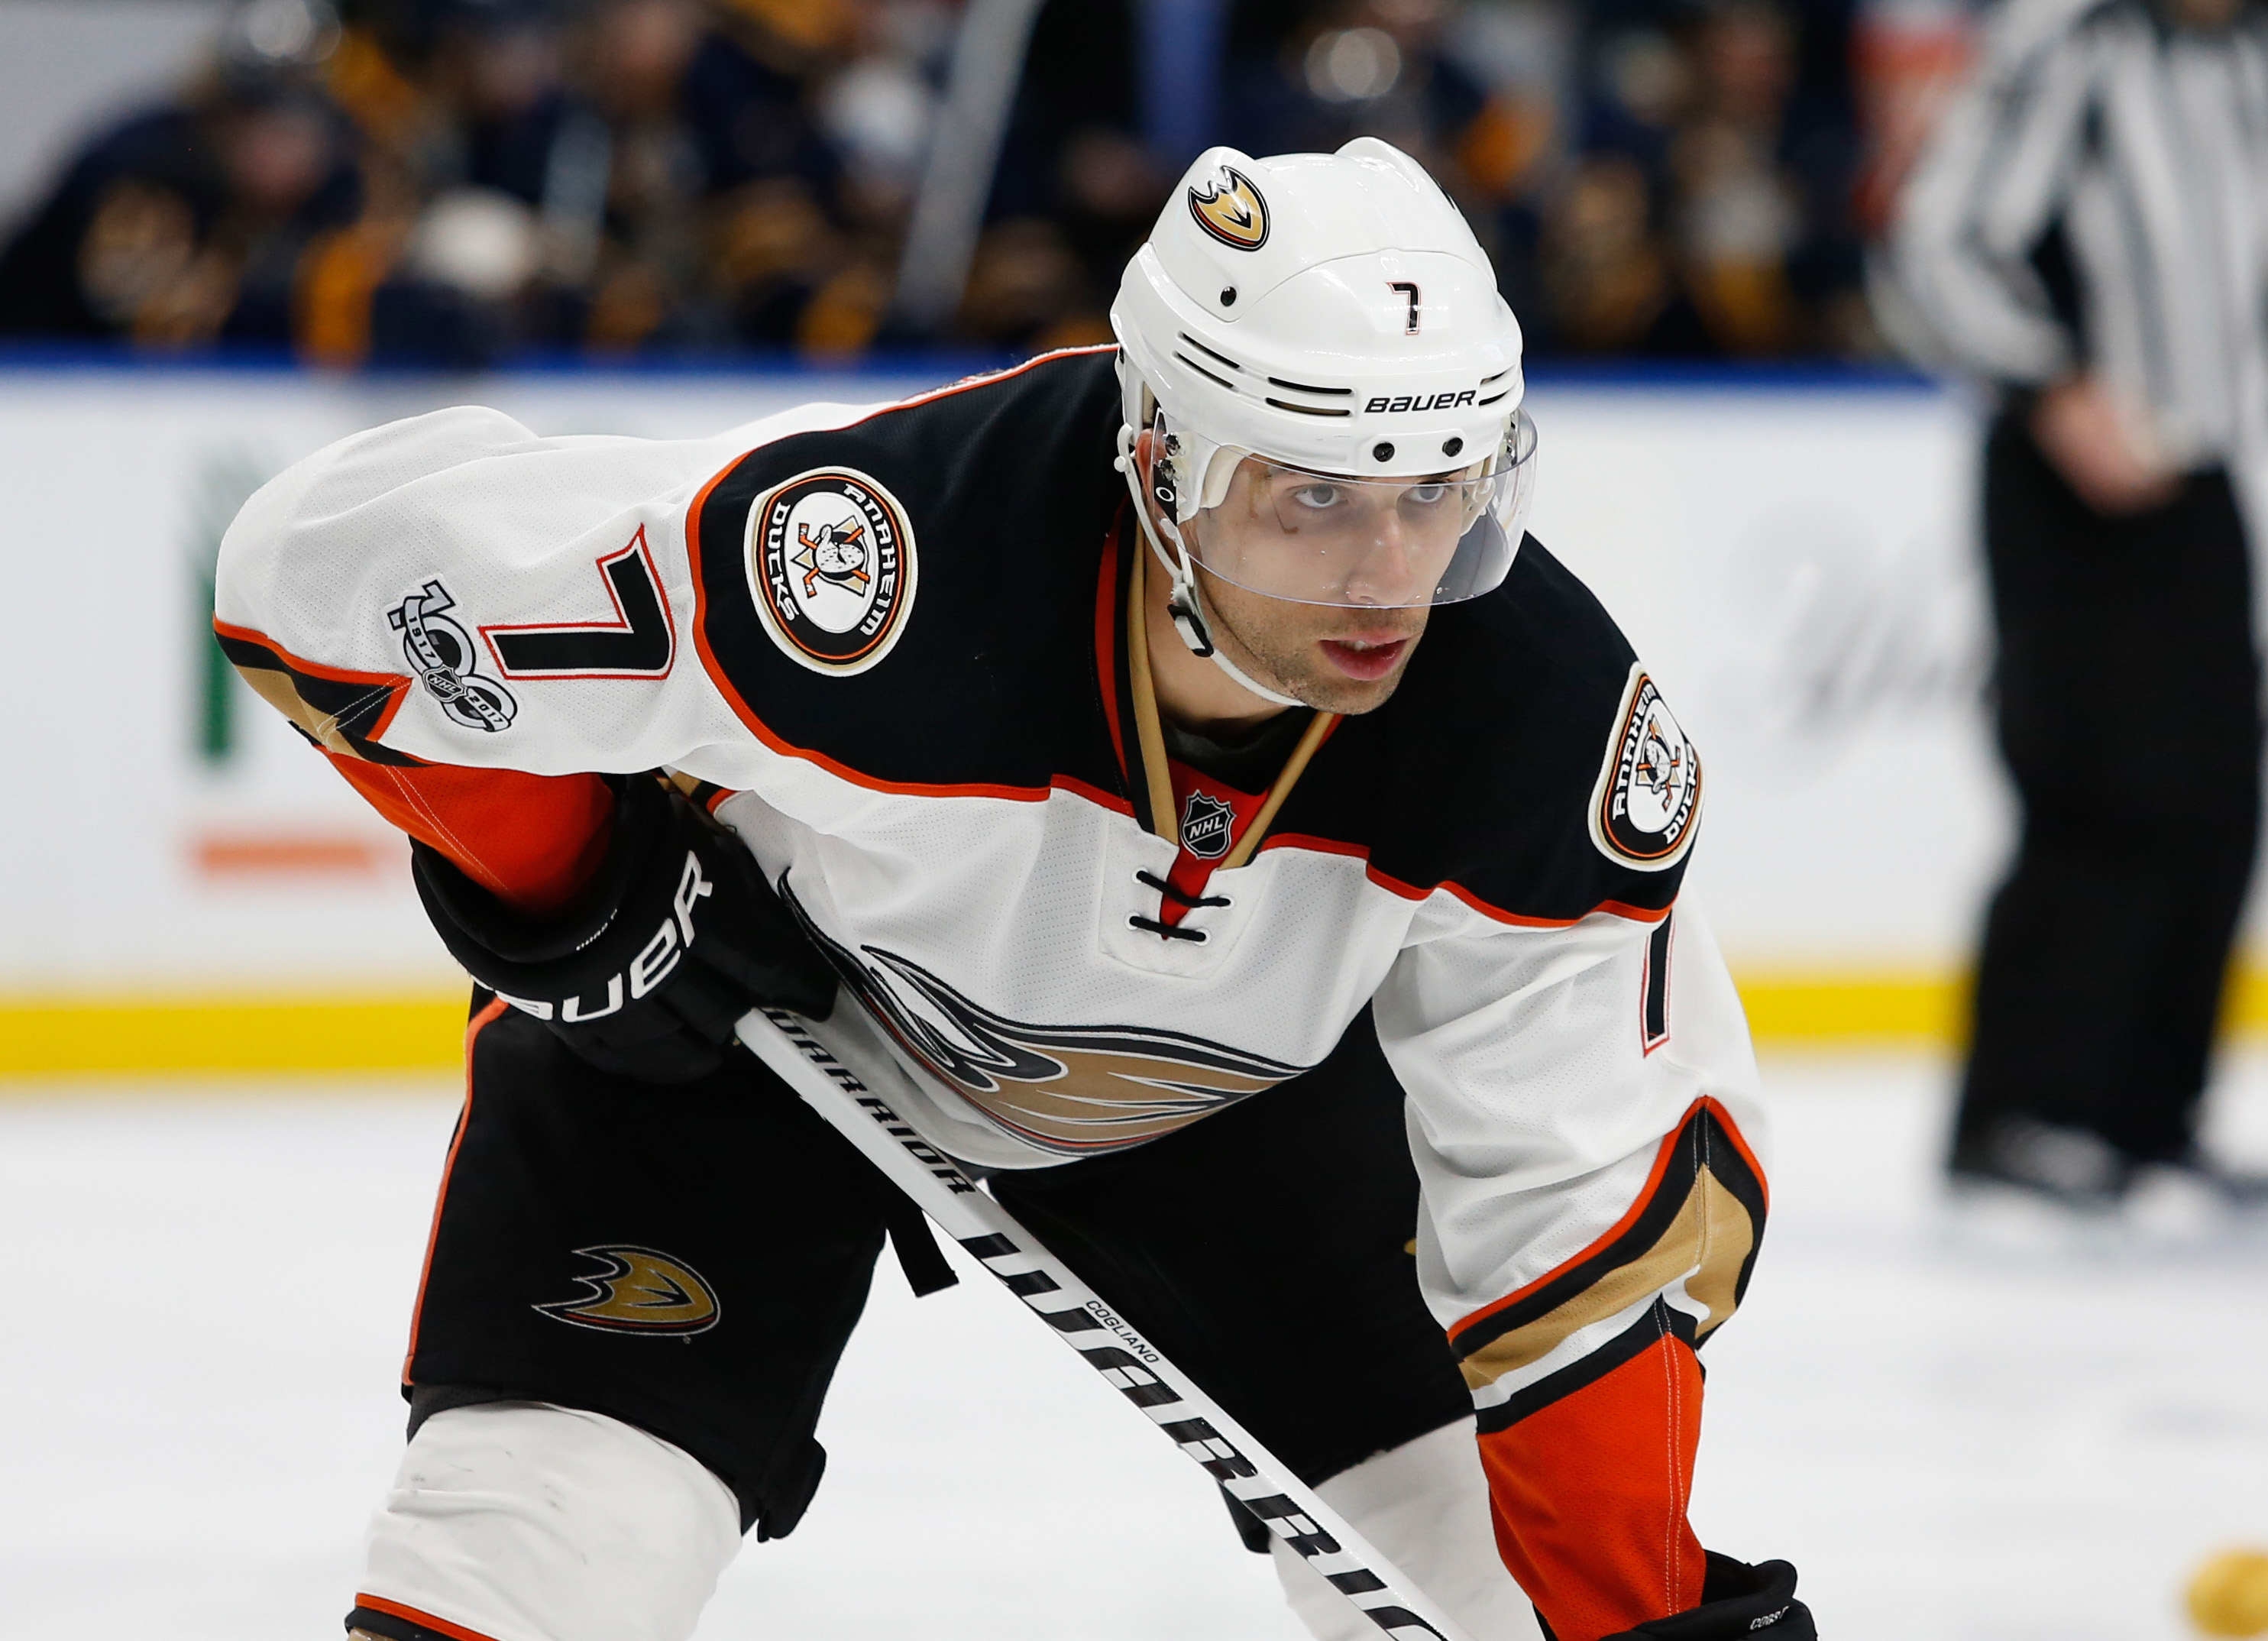 NHL Ironman: Andrew Cogliano on Pace to Break Streak